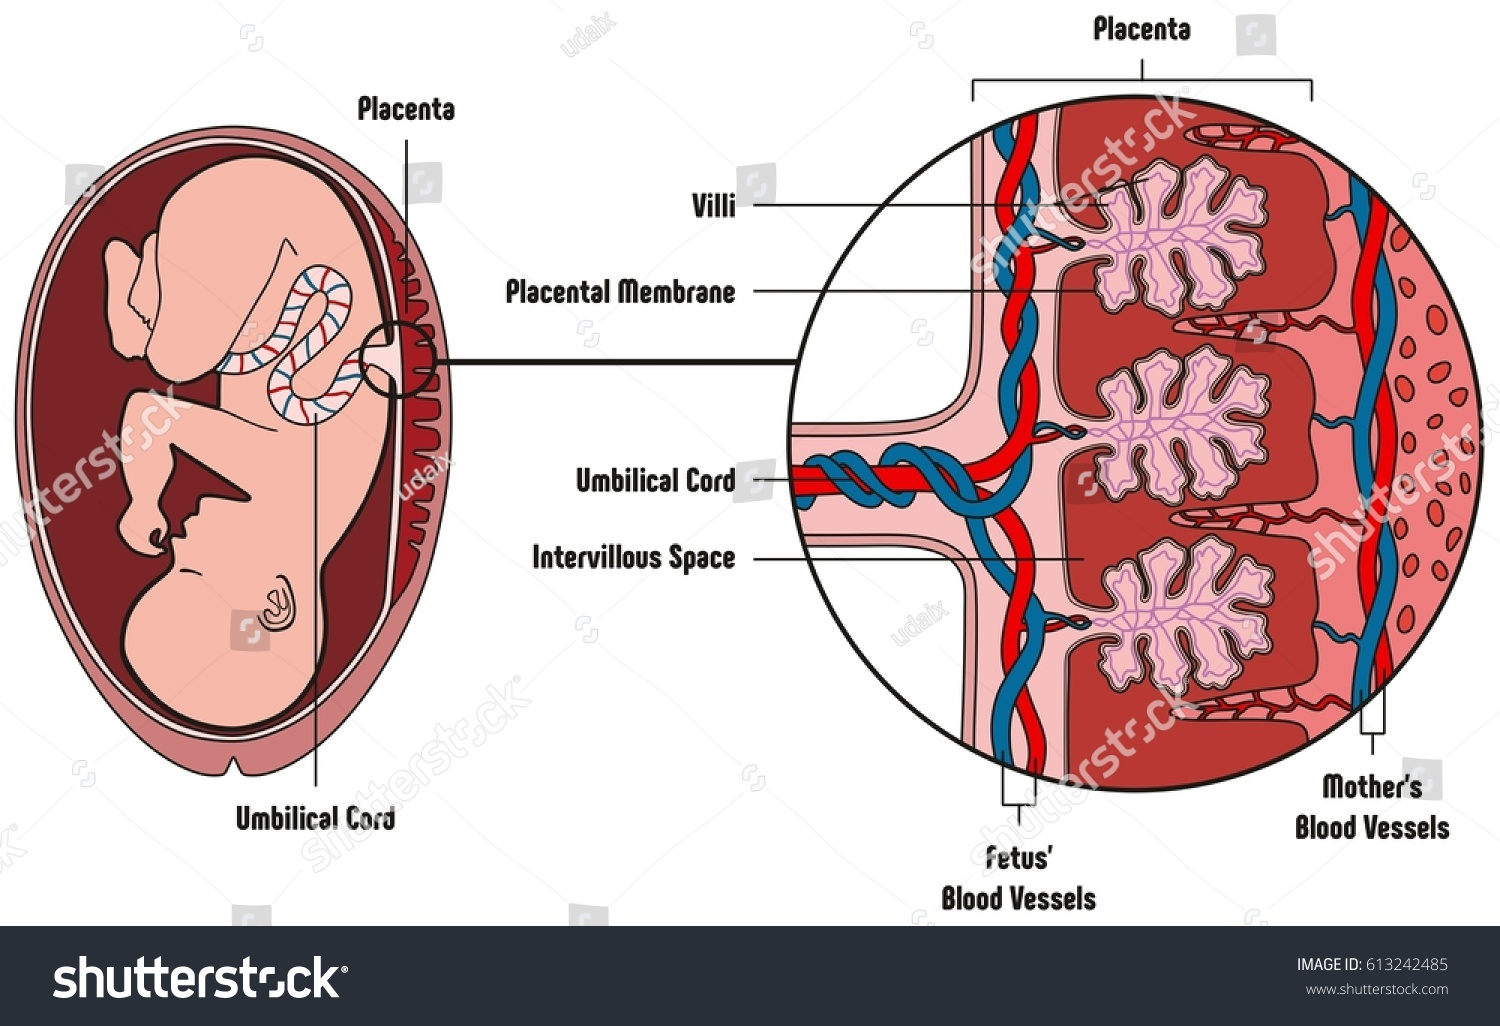 Human fetus placenta anatomy diagram all stock vector royalty free human fetus placenta anatomy diagram with all part including mother blood vessels umbilical cord placental membrane ccuart Choice Image